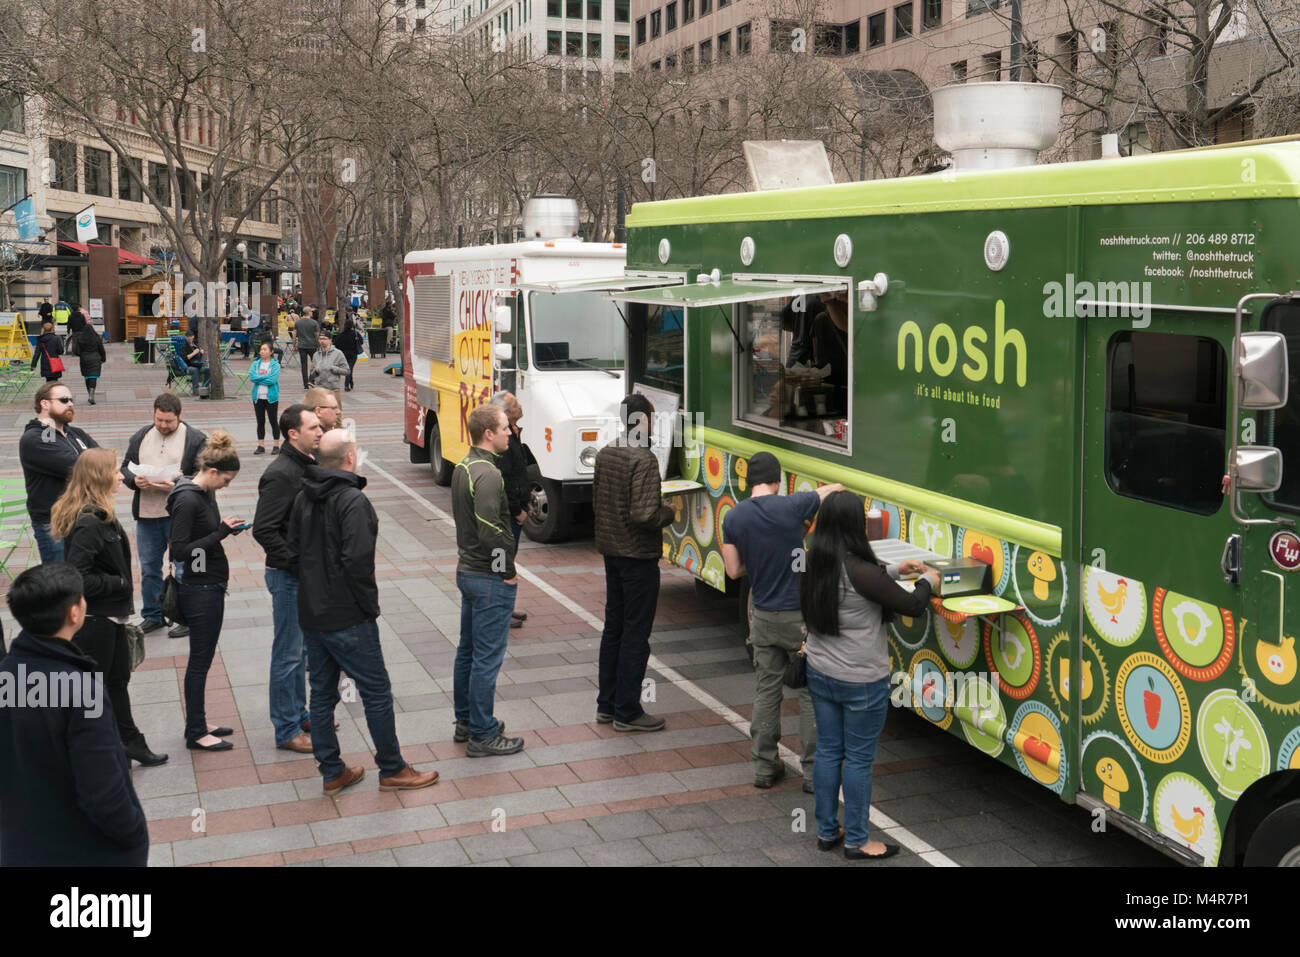 Buying lunch from a food truck, Westlake Park, Seattle, Washington, USA - Stock Image